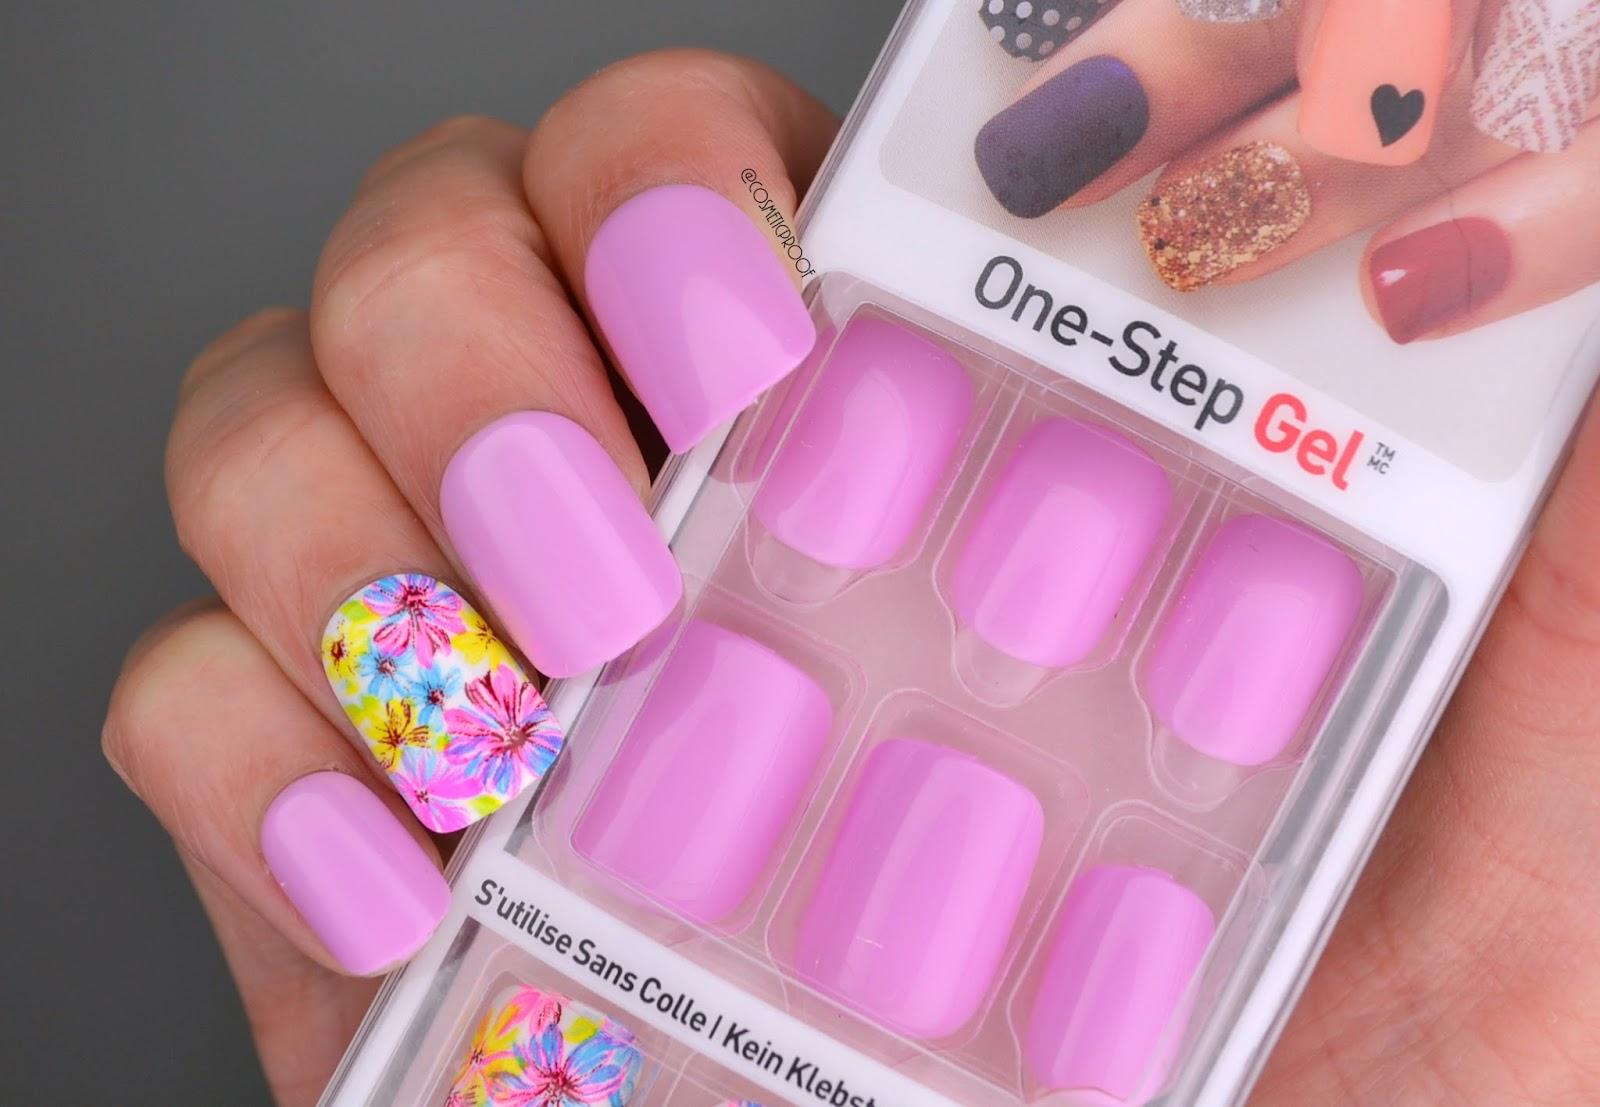 NAILS | imPRESS One Step Gel Press On Manicure | Cosmetic ...